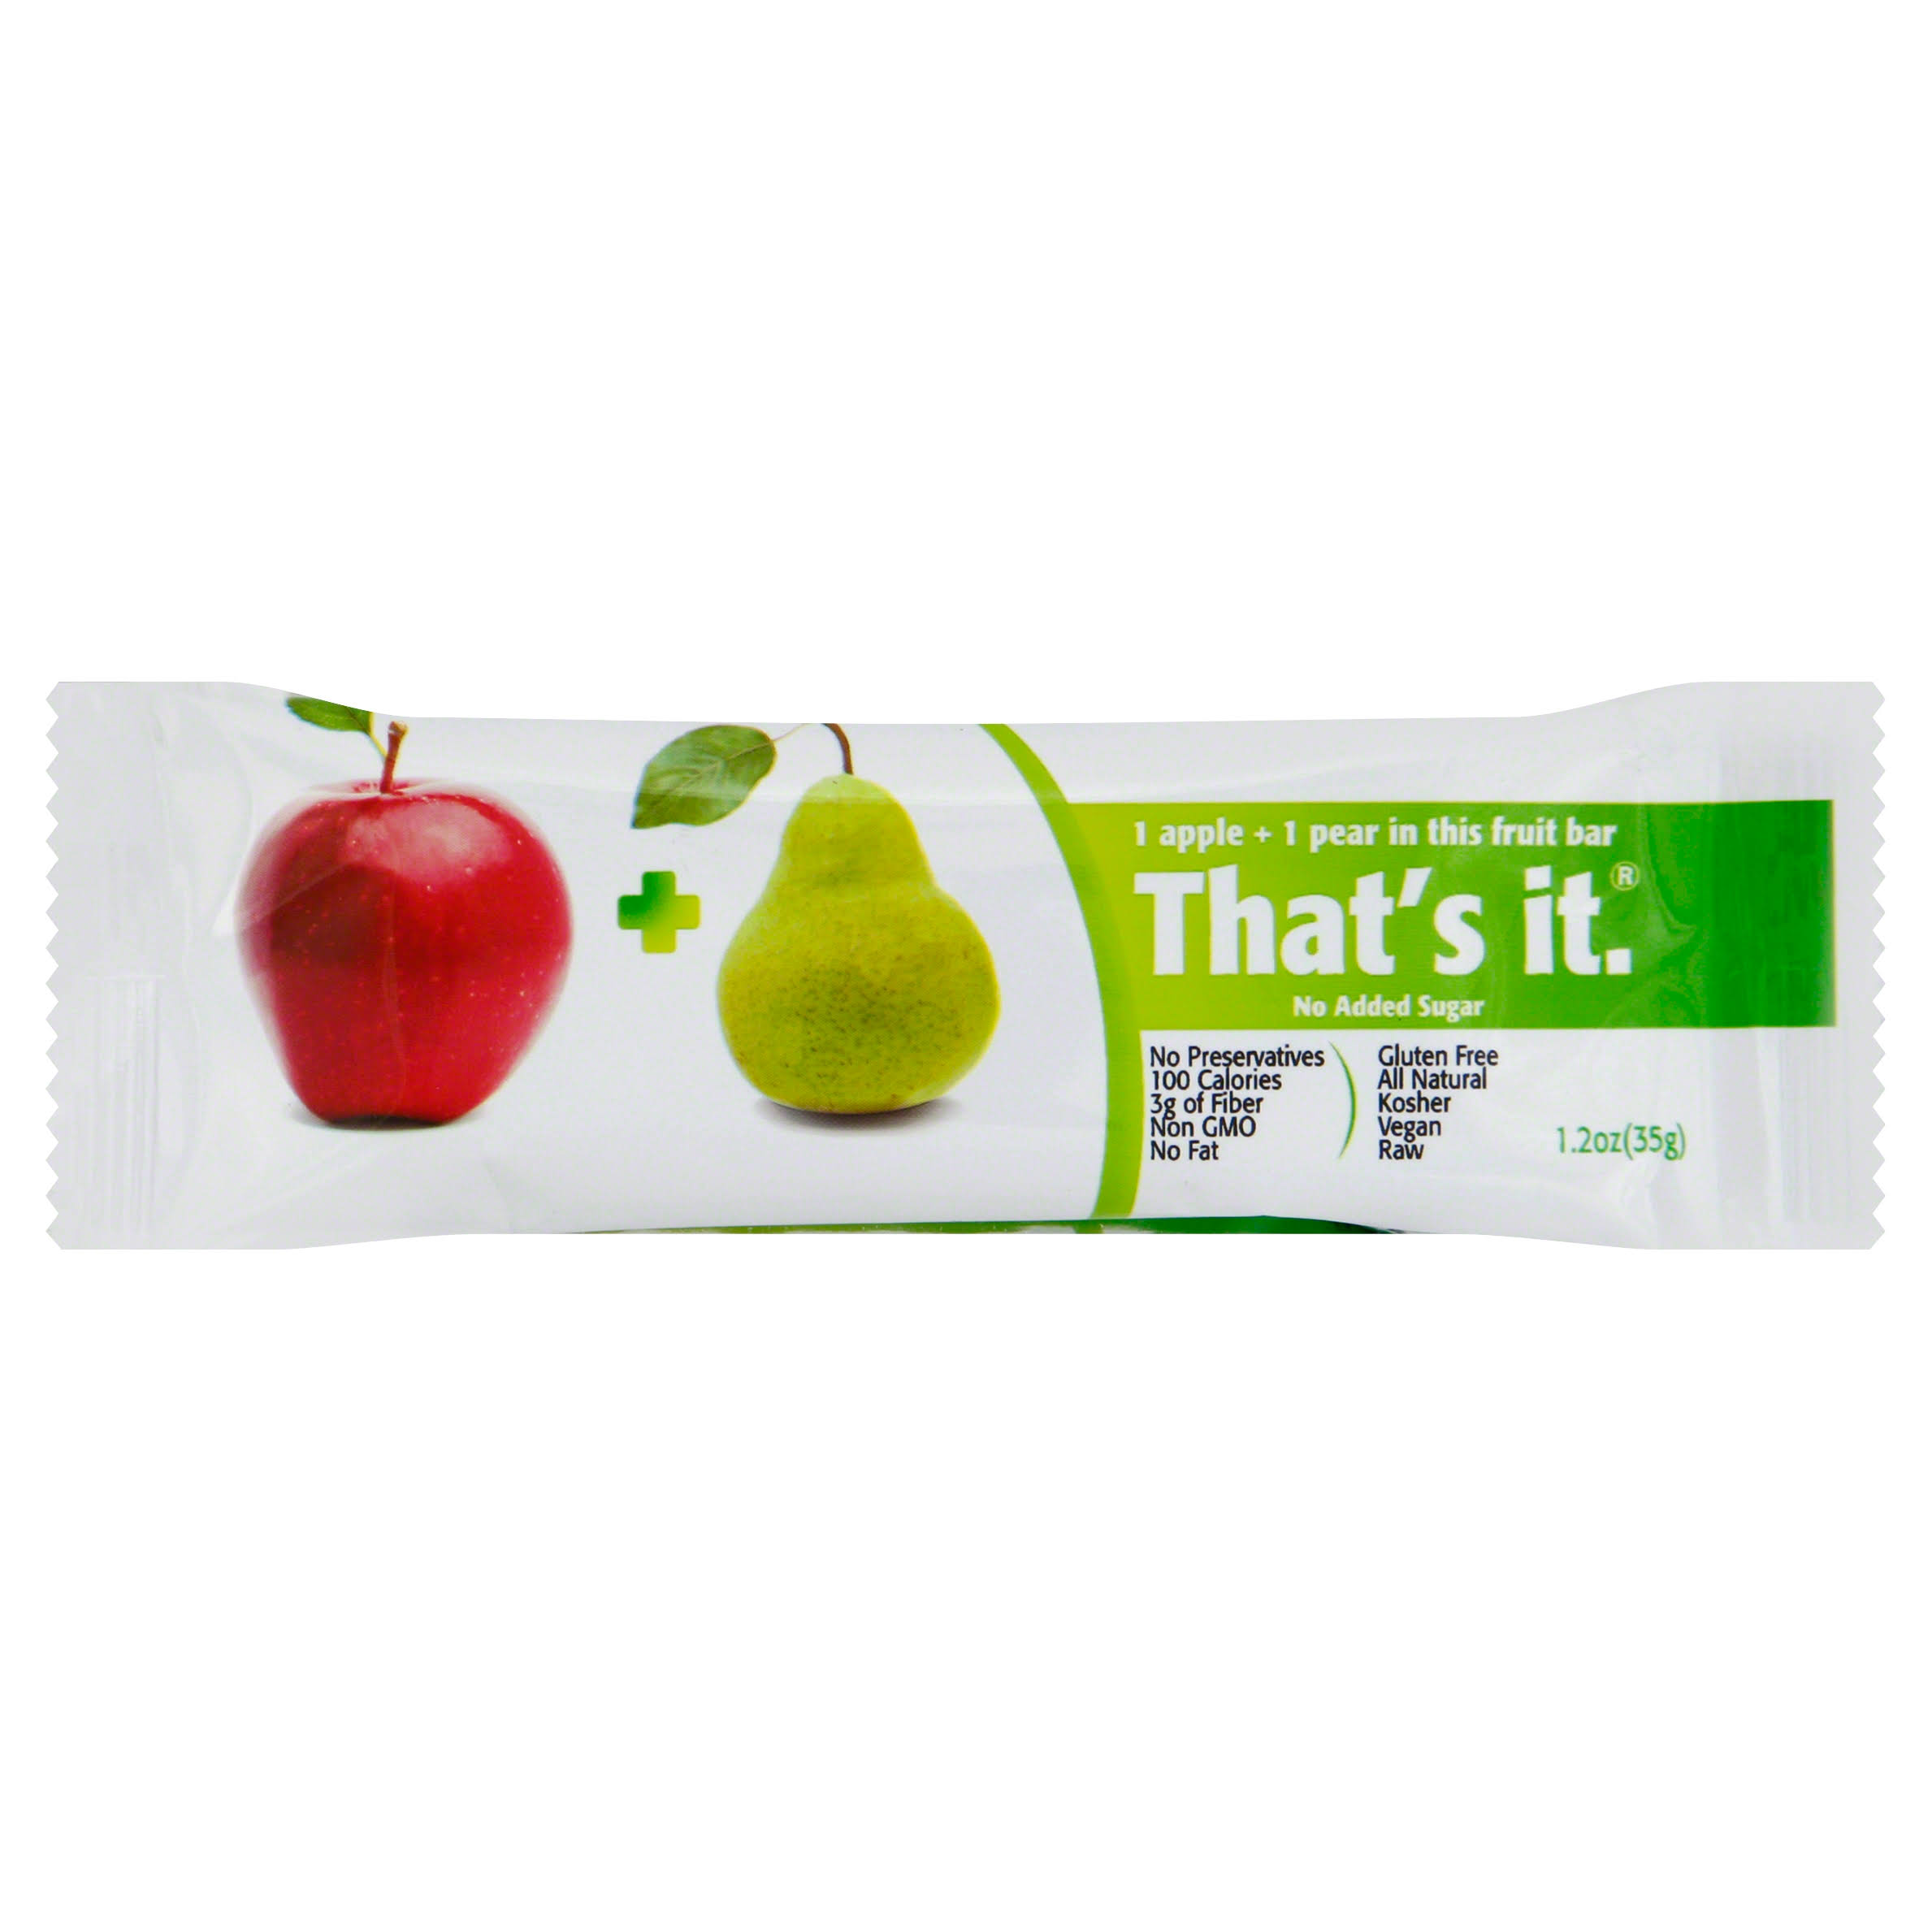 That's It Fruit Bar - Apple and Pear, 1.2oz